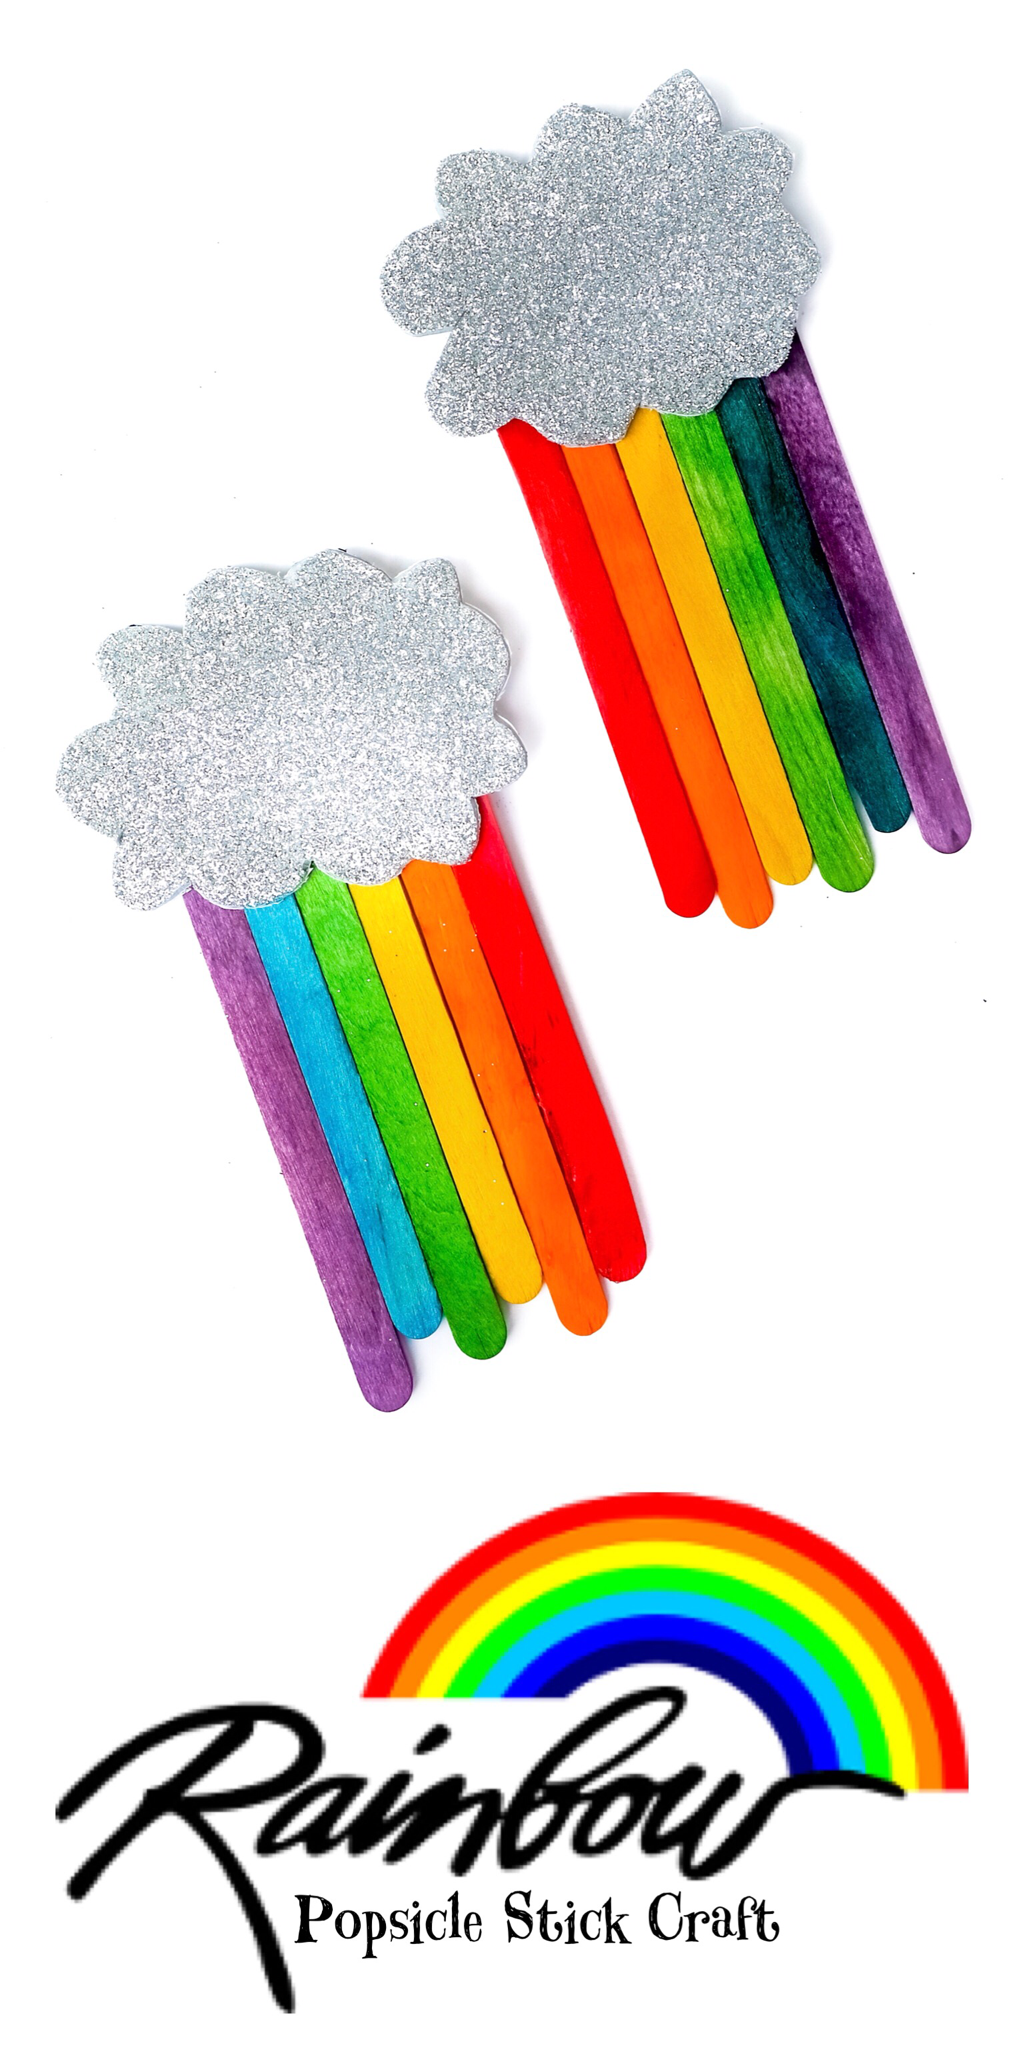 Rainbow Popsicle Stick Craft #popciclesticks